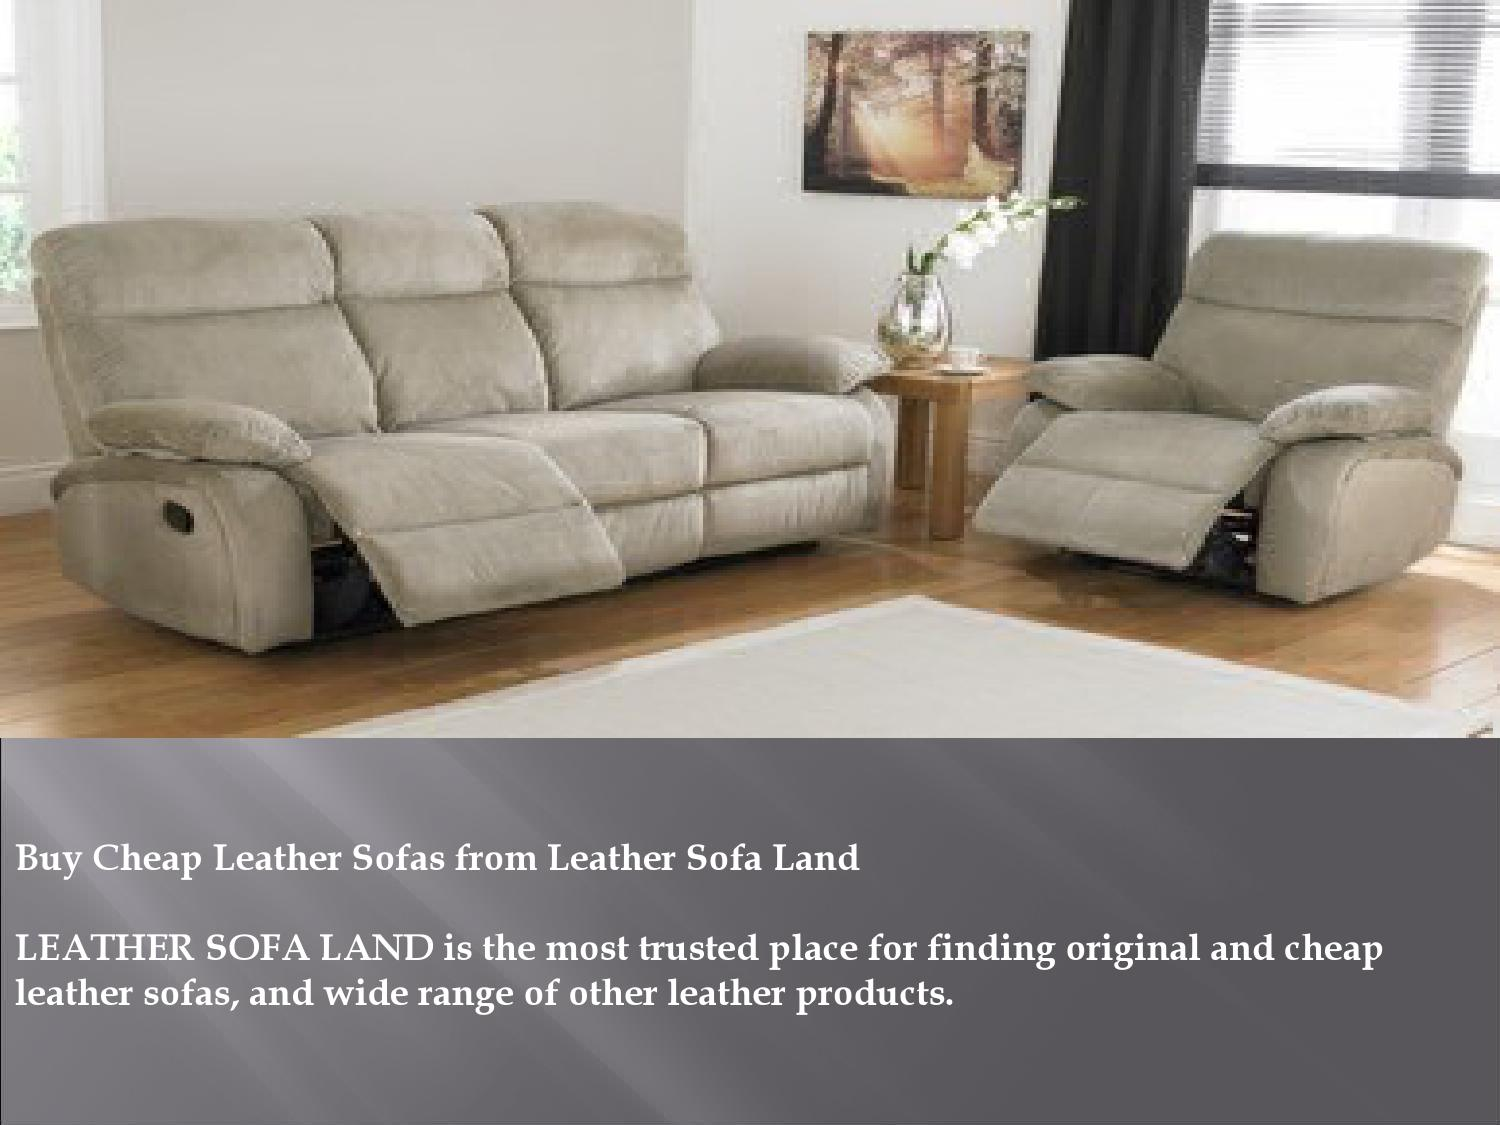 Buy Cheap Leather Sofas from Leather Sofa Land by Maxwell ...